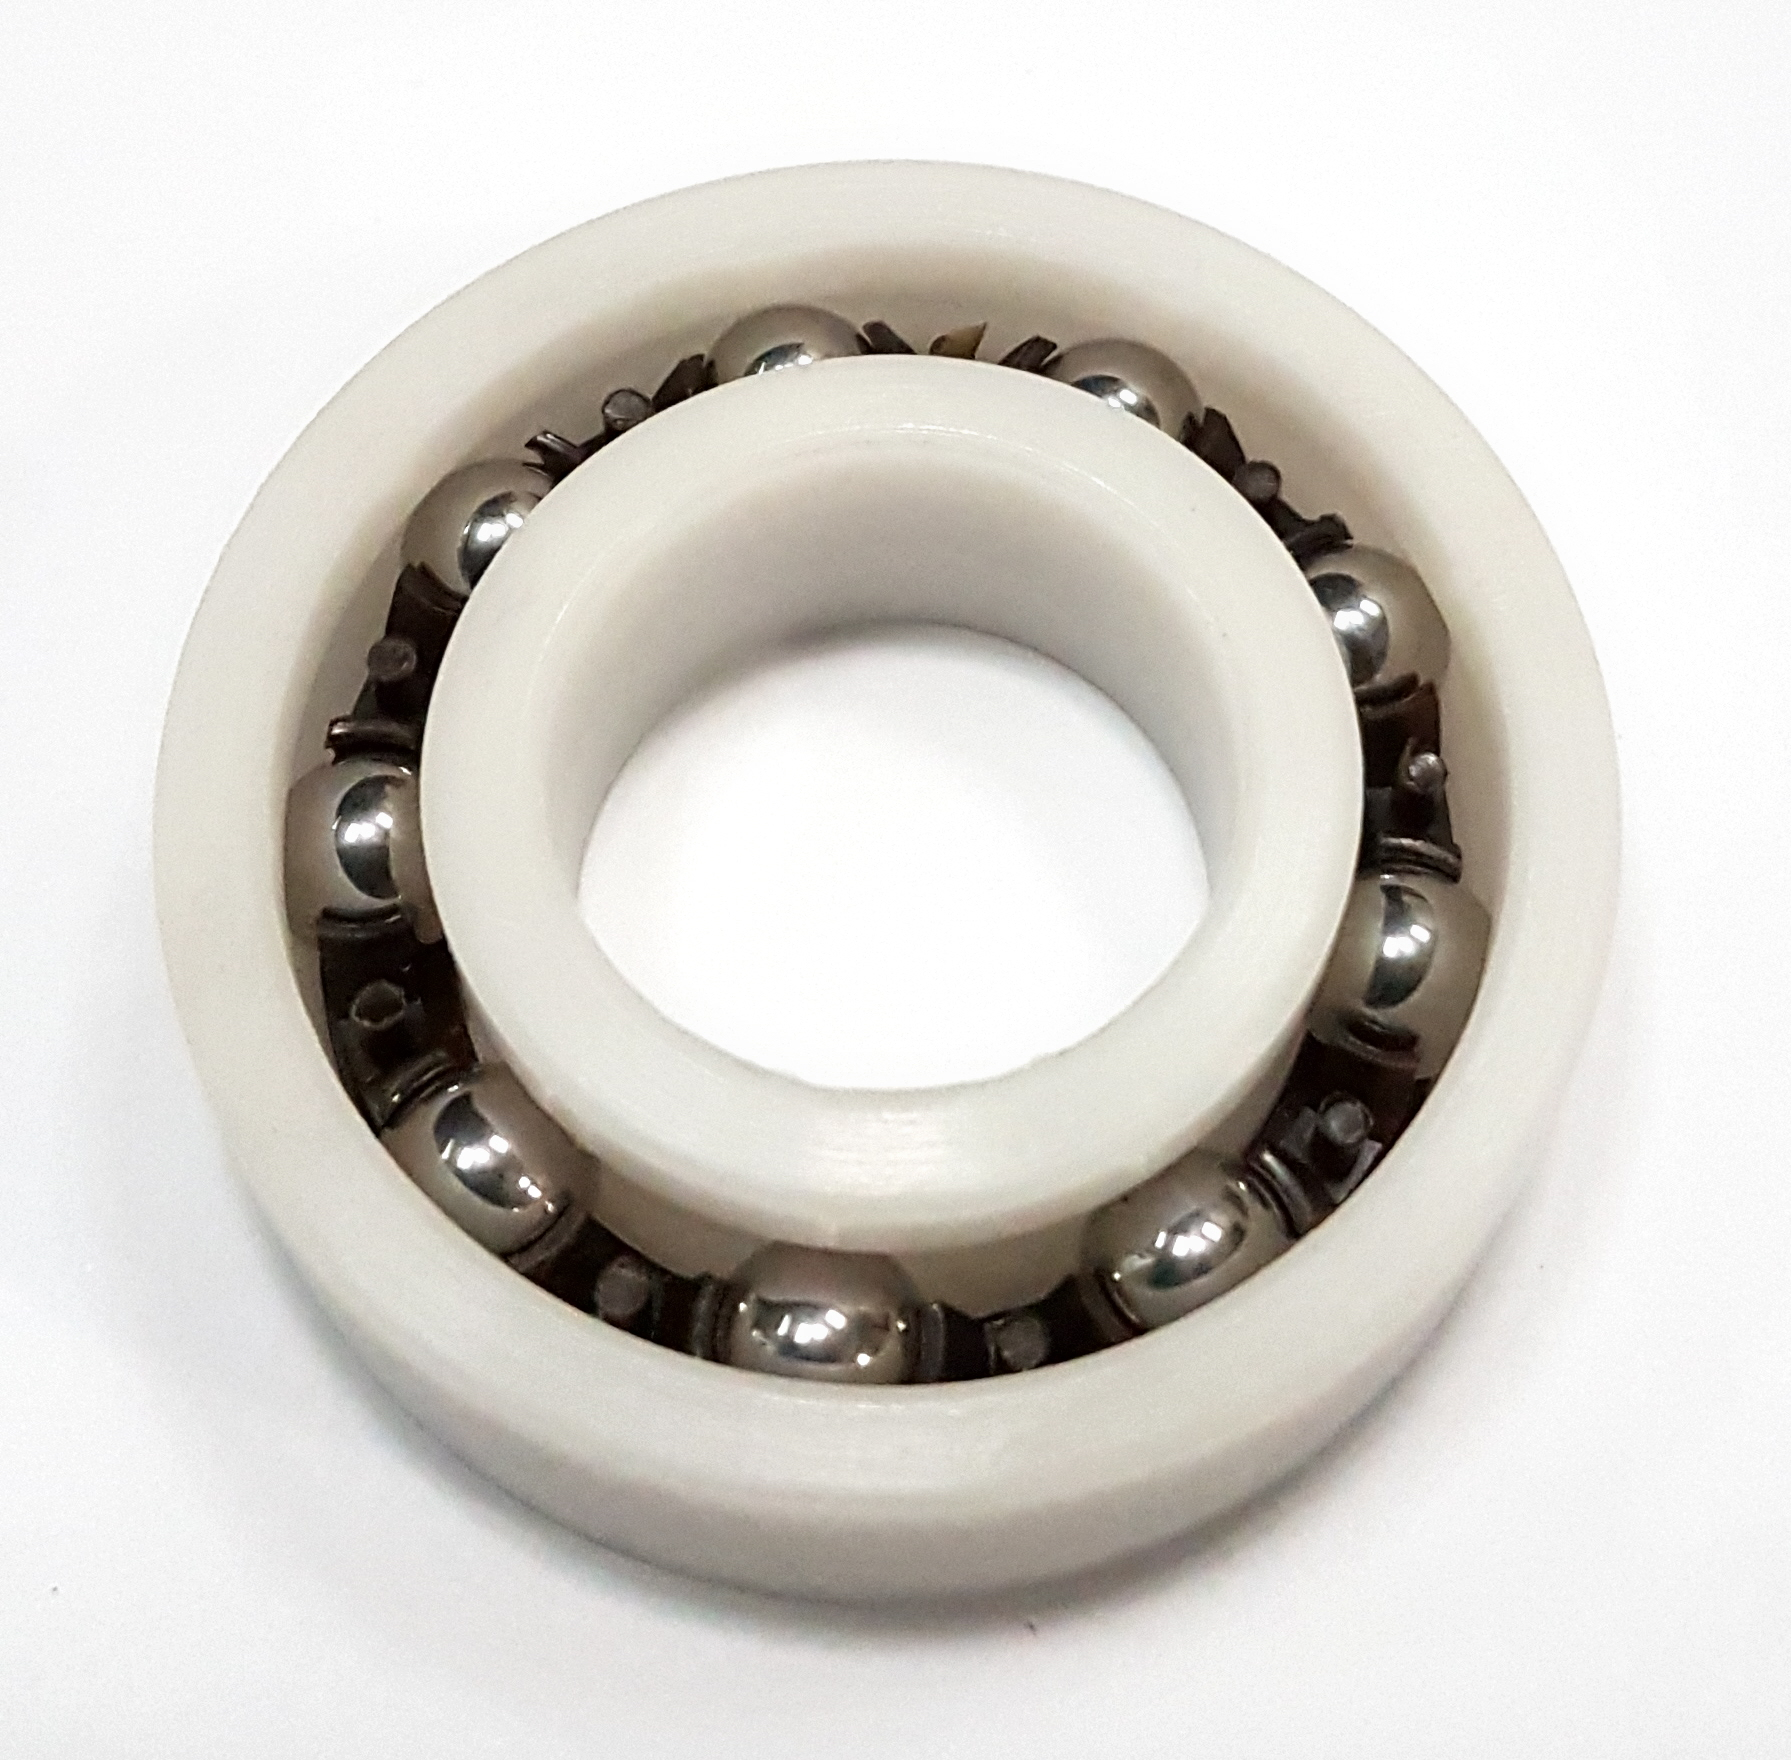 Specialist bearings provider launches plastic bearings range